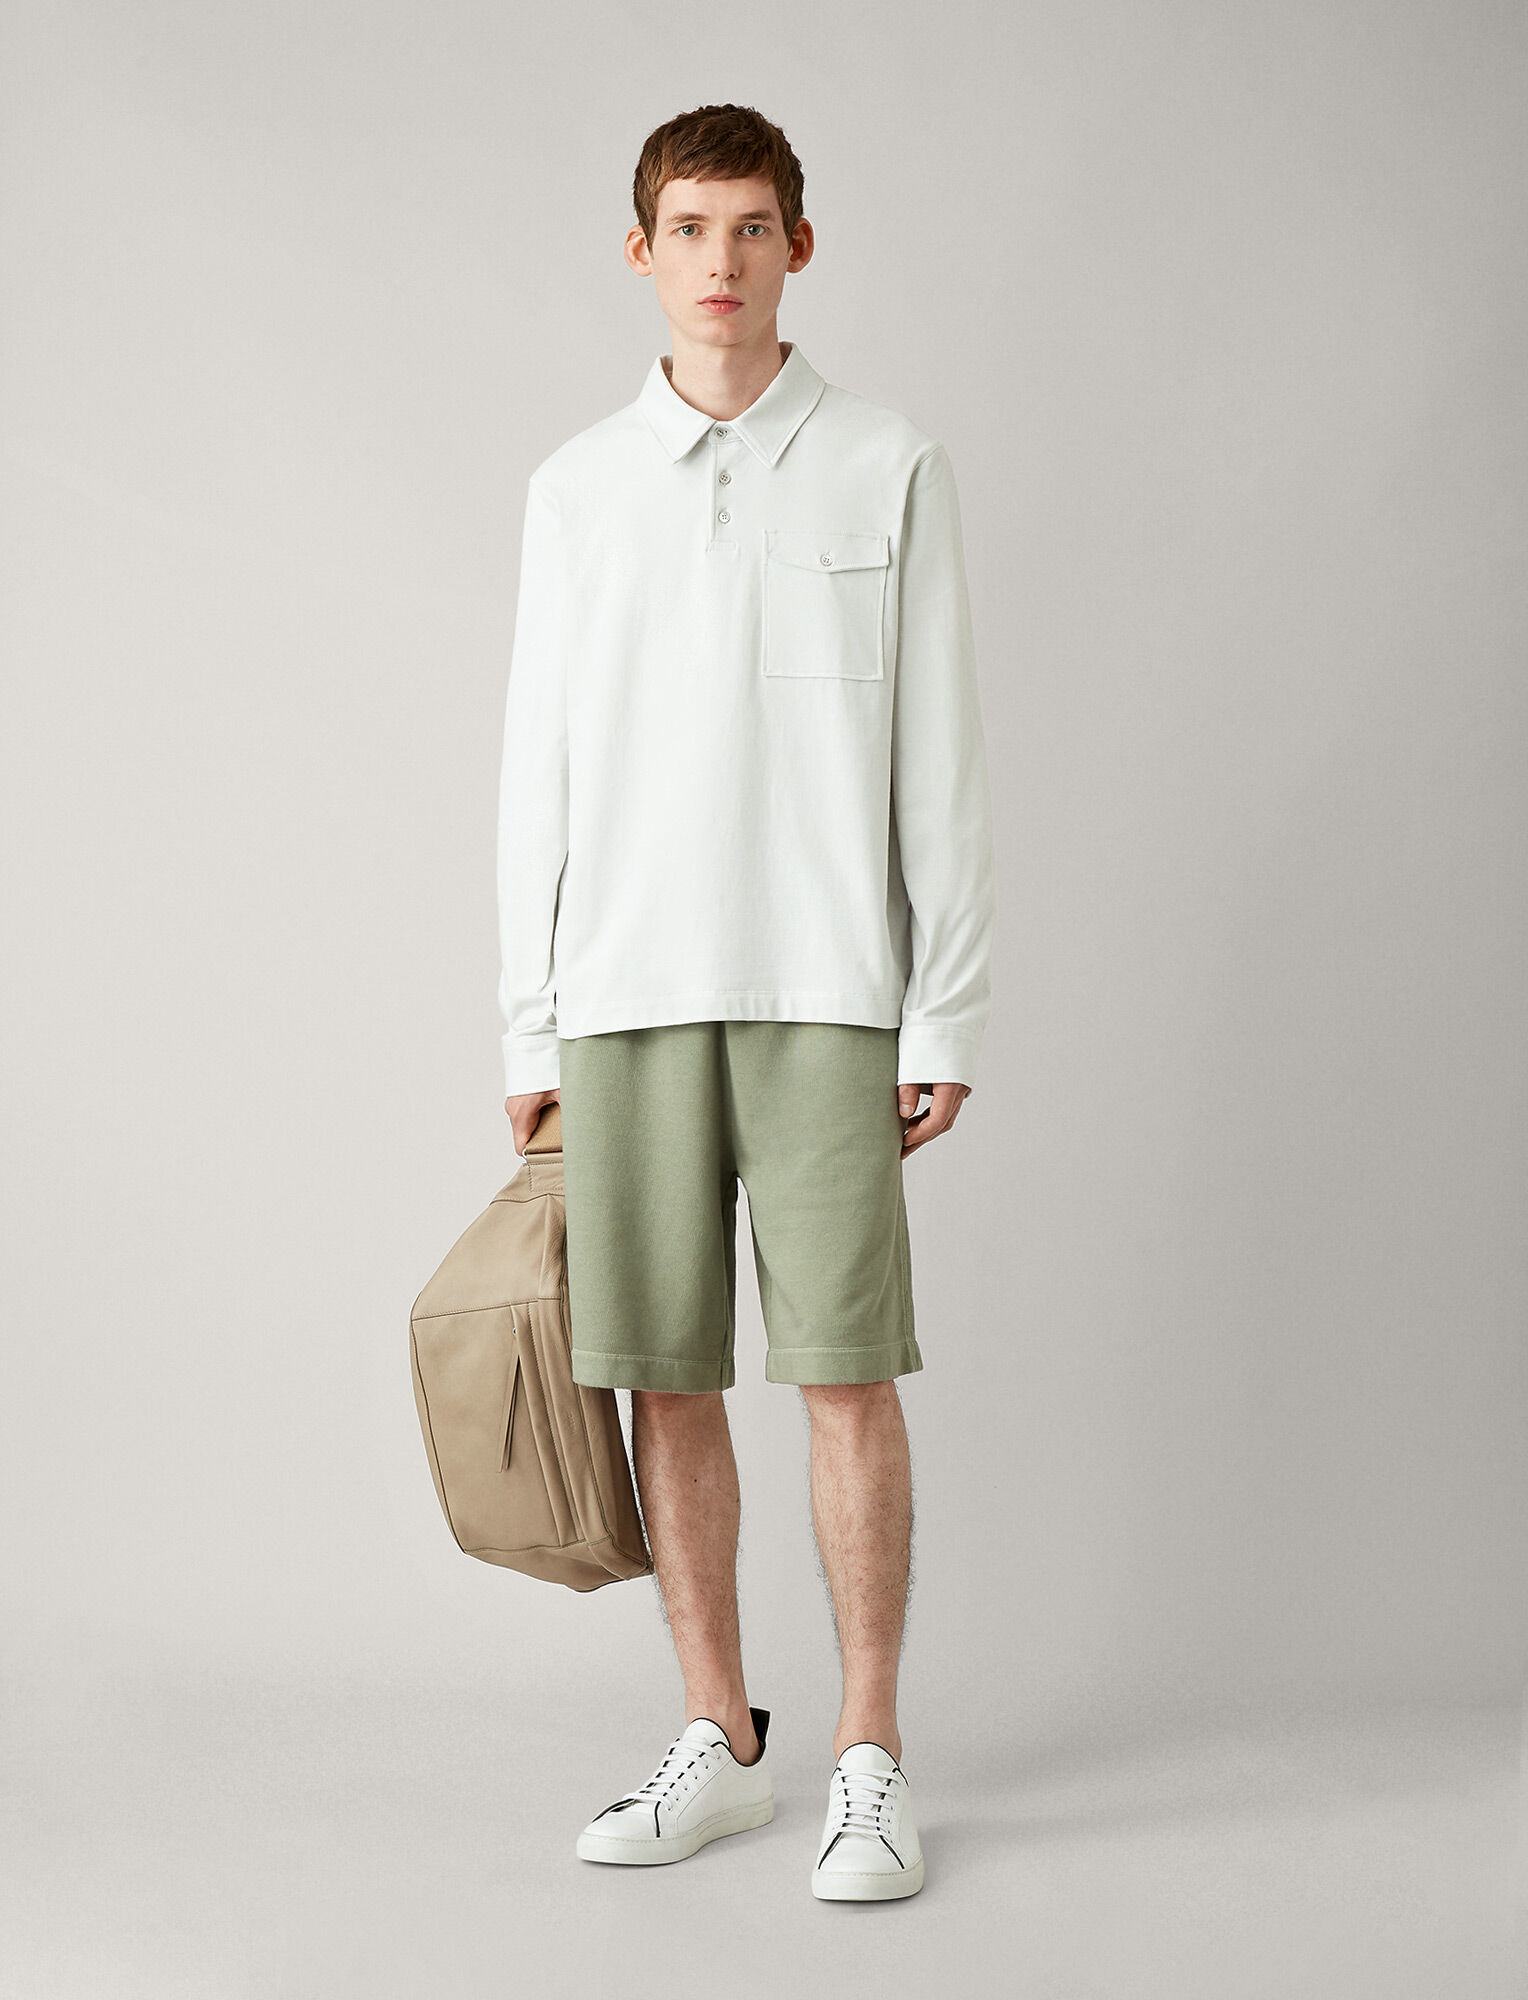 Joseph, Polo Heavy Jersey Tee, in STONE